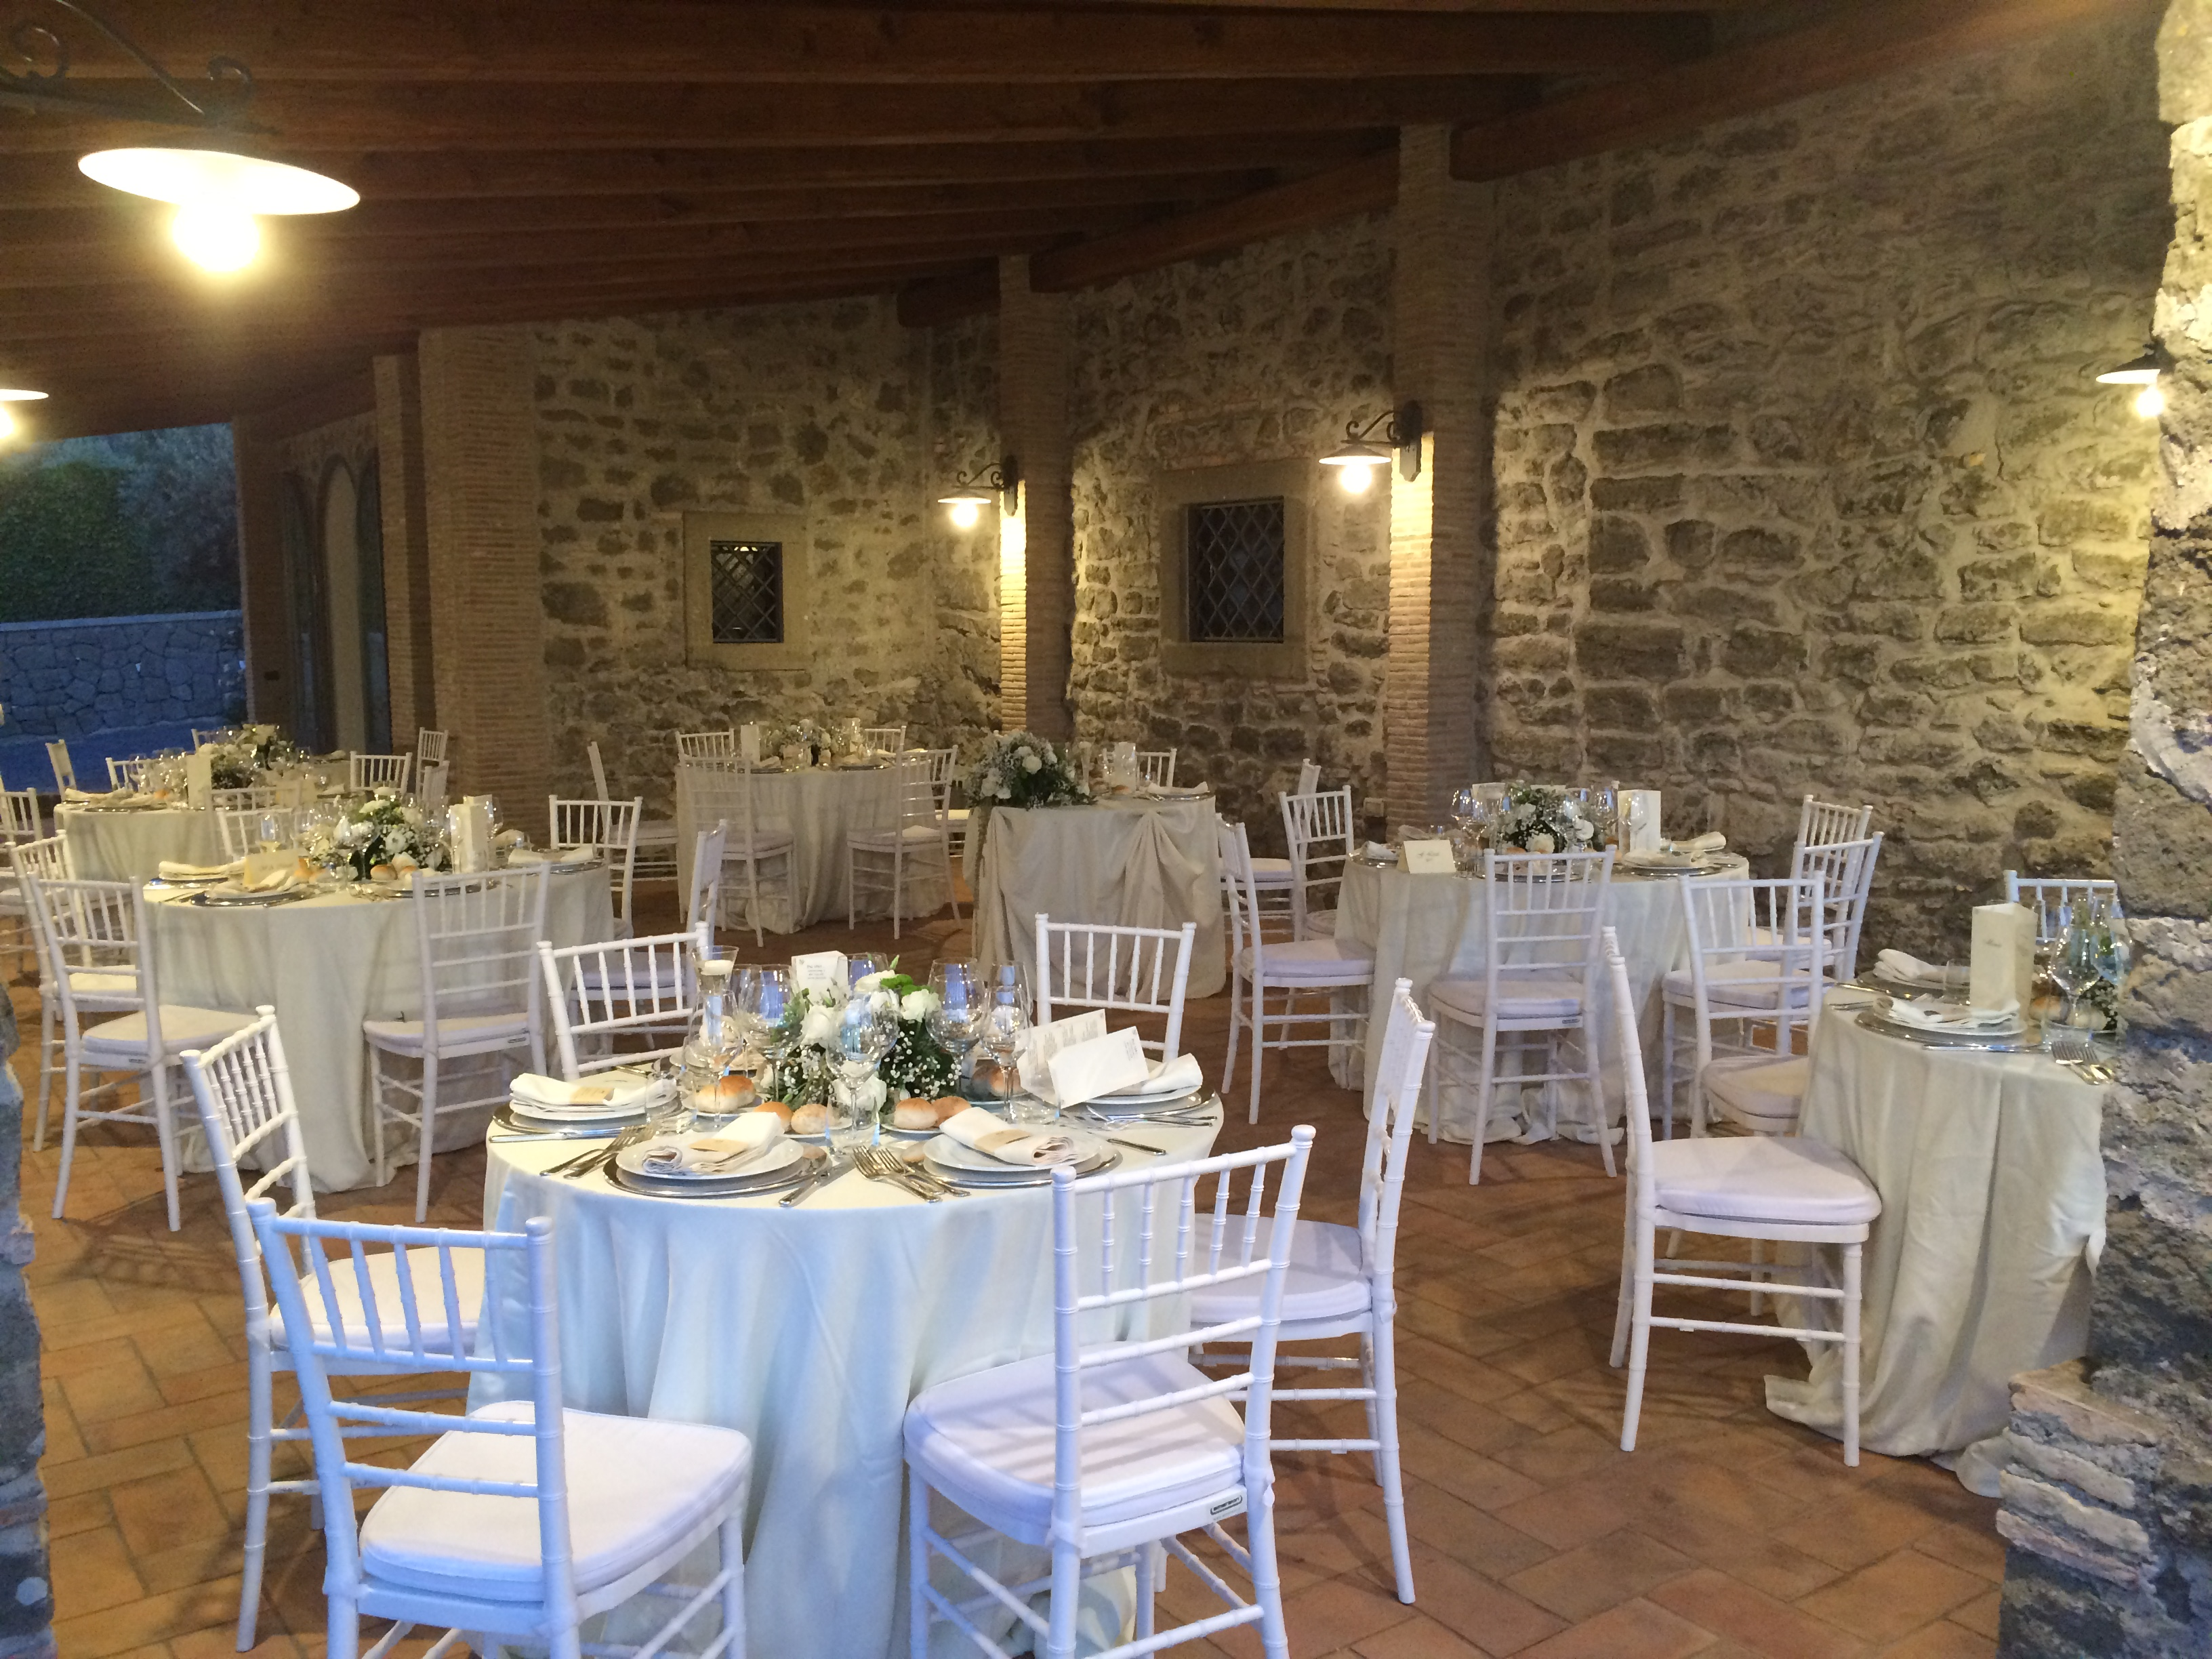 Location Matrimonio Country Chic Roma : Matrimonio shabby chic maan banqueting catering roma